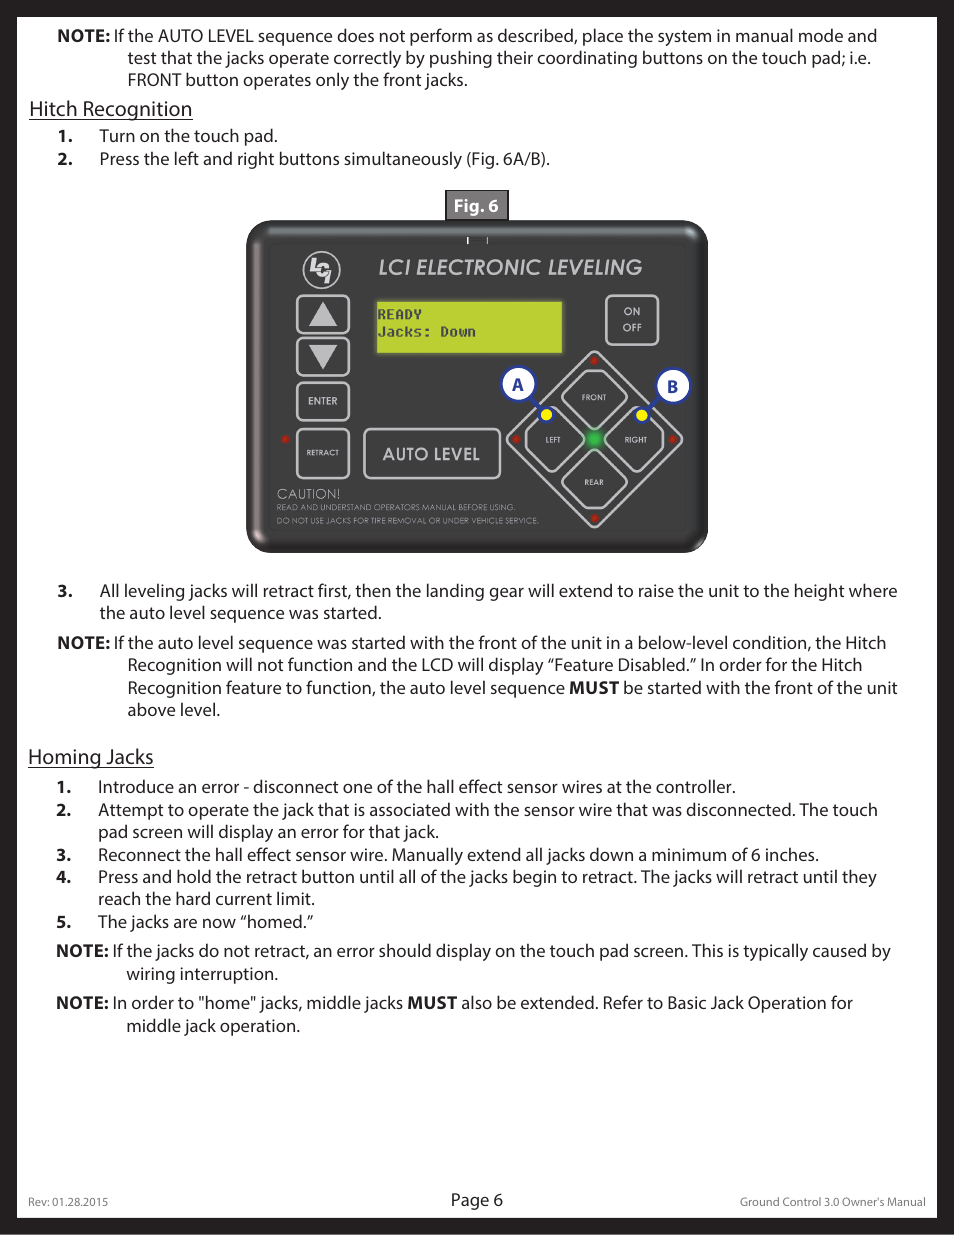 Lippert Components Ground Control 3 0 User Manual | Page 6